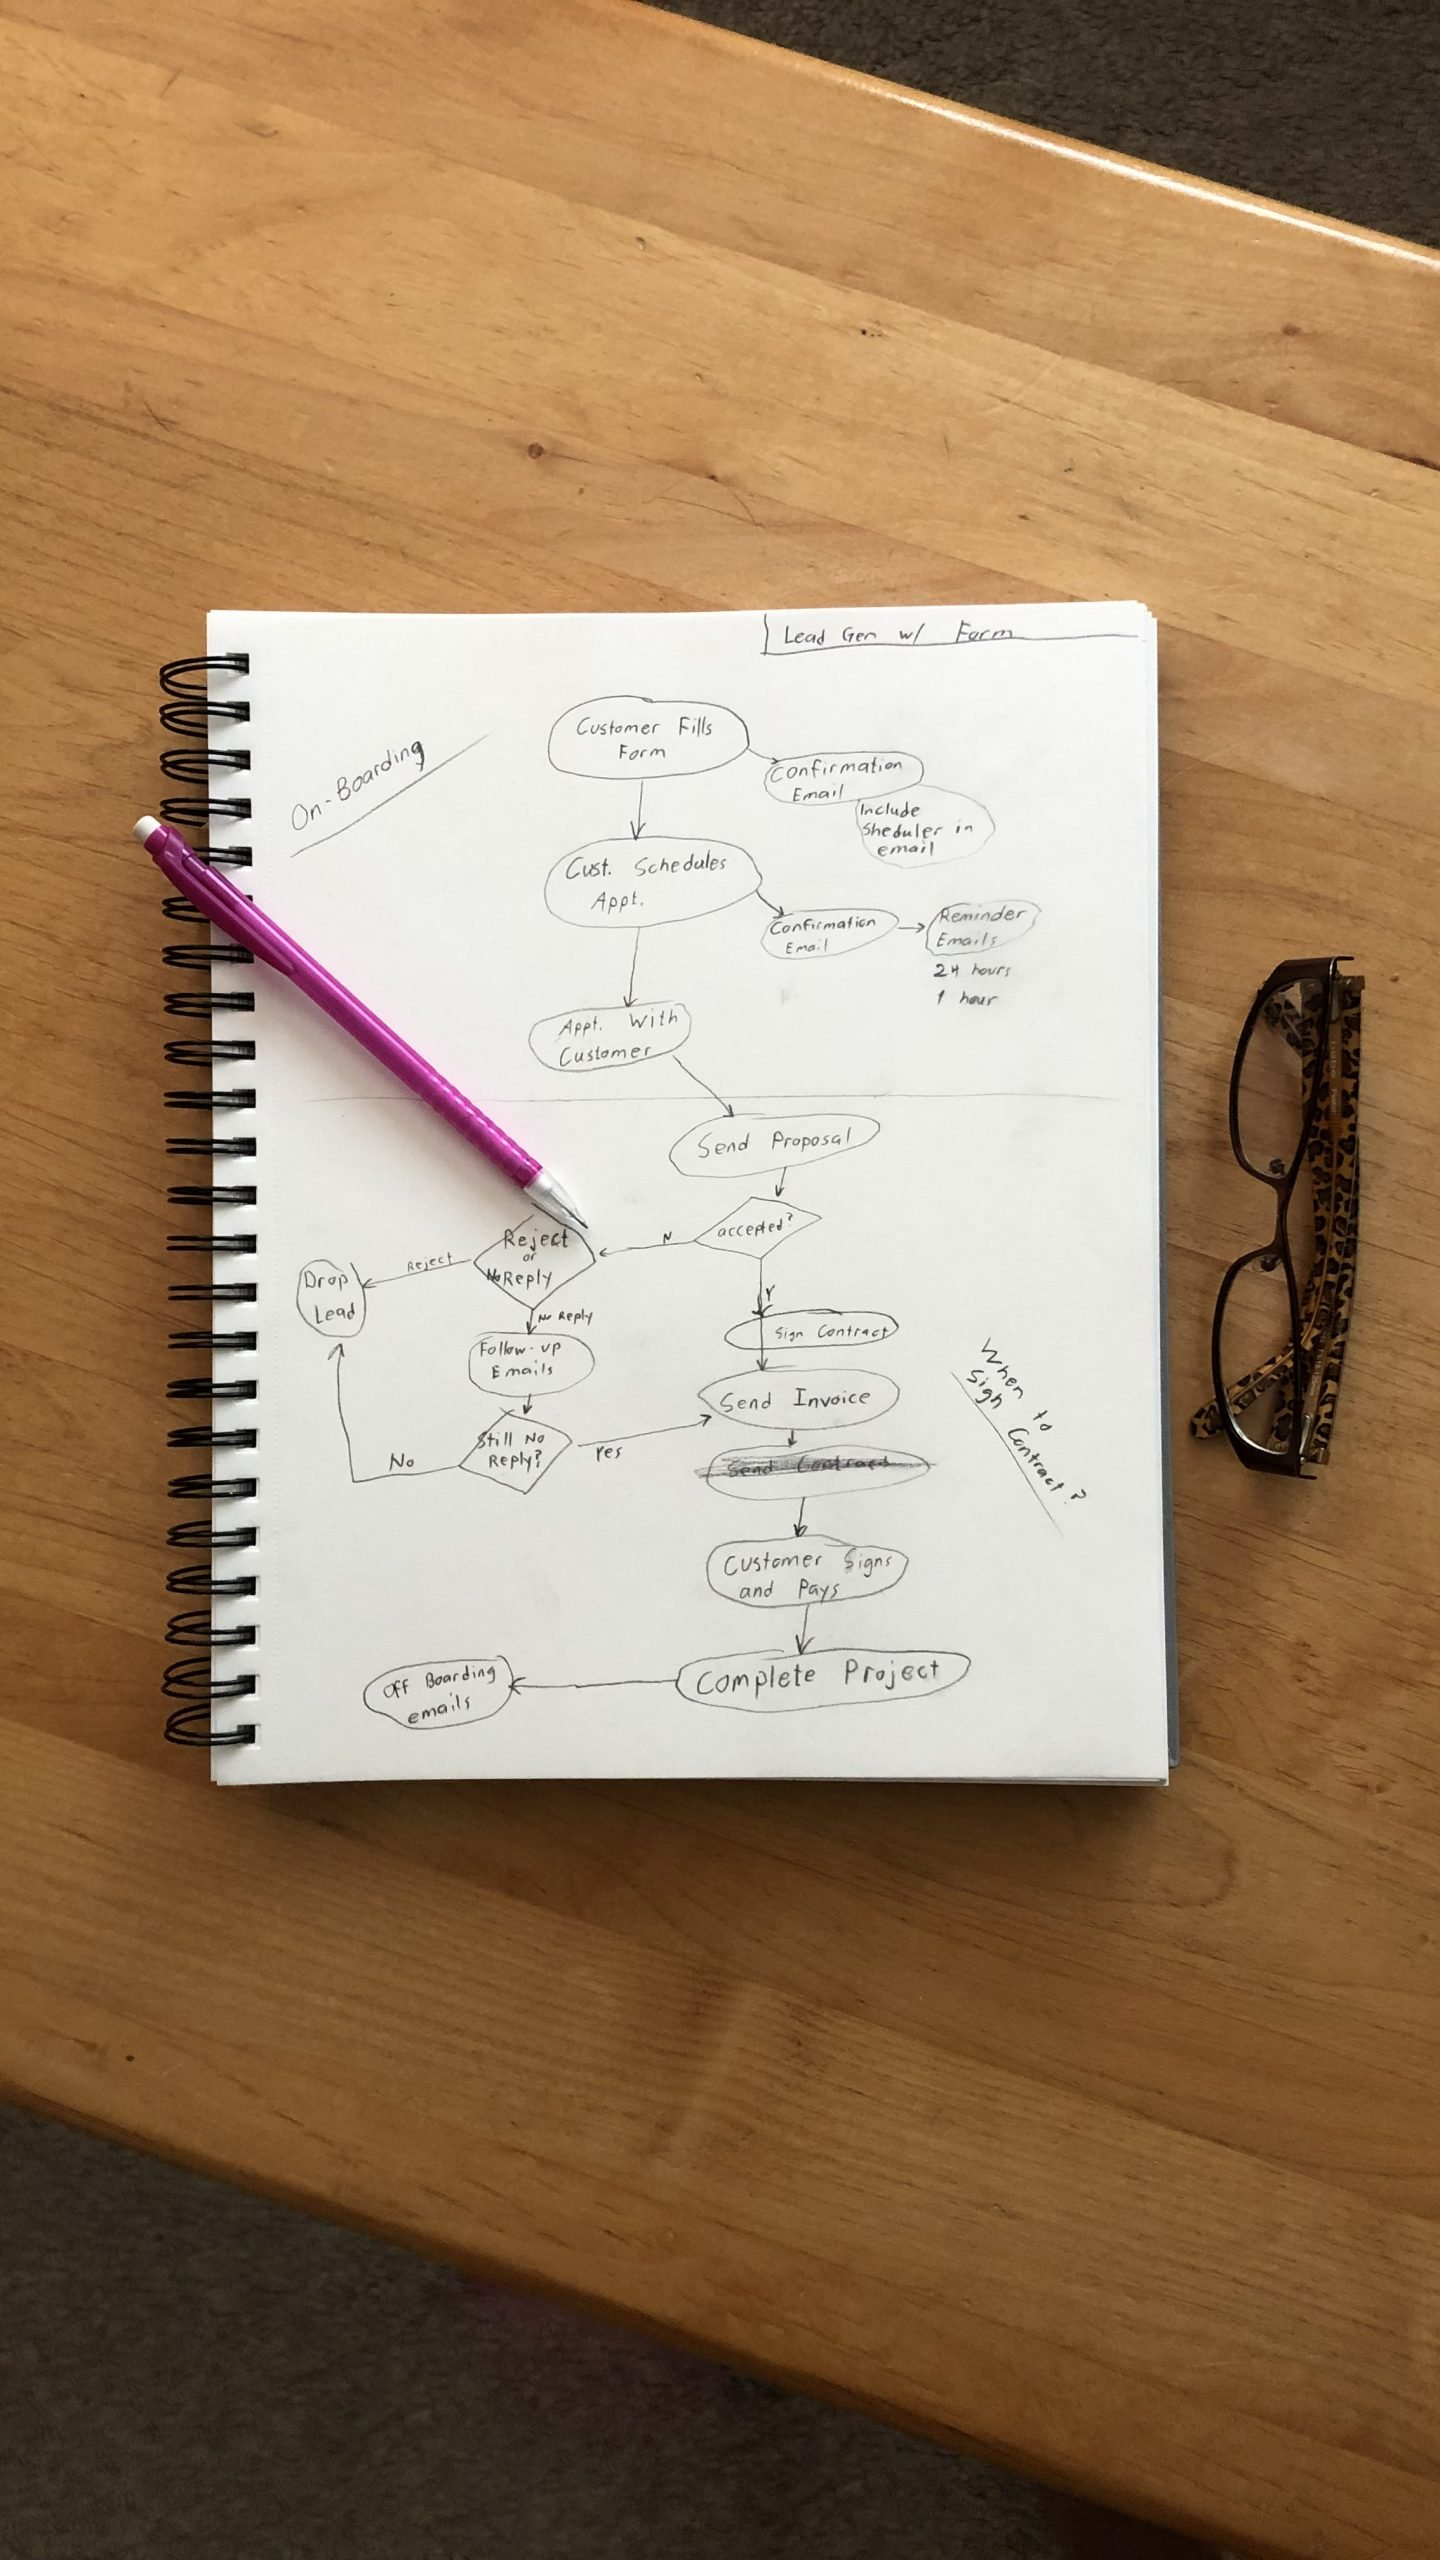 Notebook with a business process workflow drawn out in pencil.